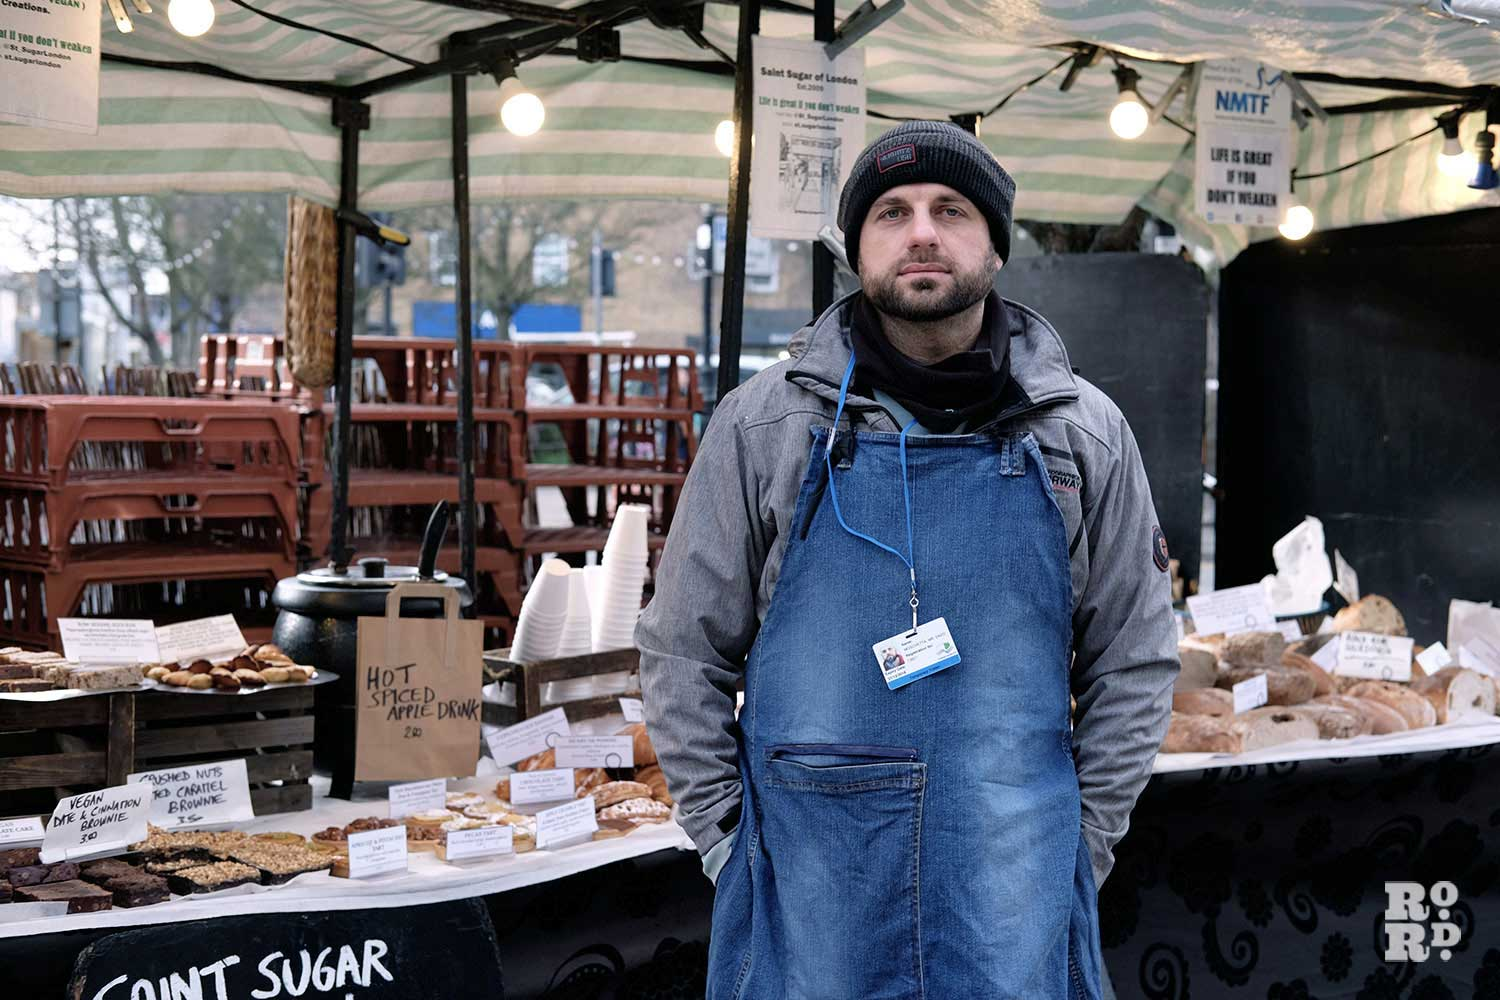 Enzo standing in front of his Saint Sugar of London stall in Roman Road